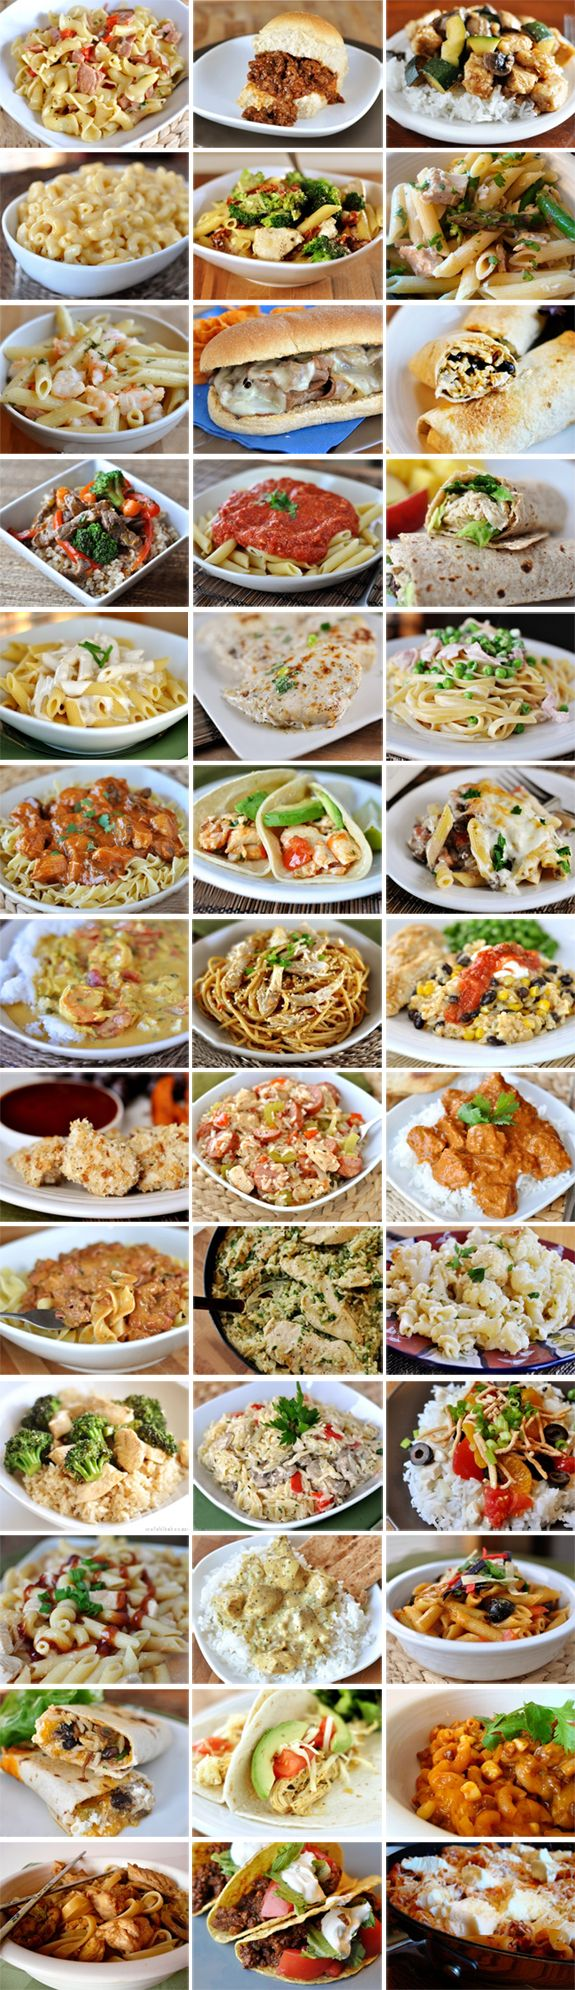 39 Meals to Make in 30-Minutes or Less | Mel's Kitchen Cafe